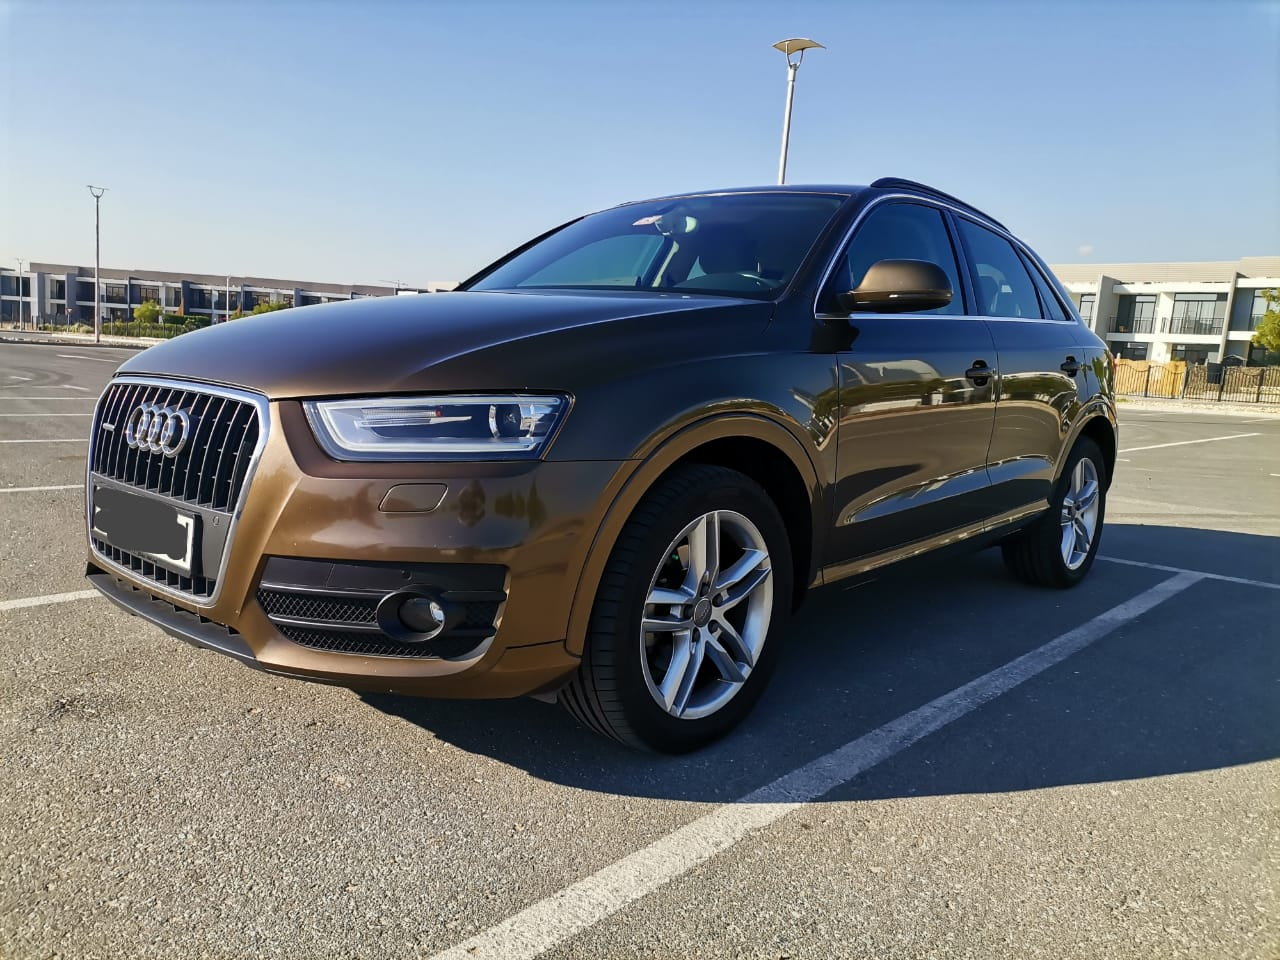 Used Audi Q3 2.0 TFSI 180 2015 For Sale In Dubai